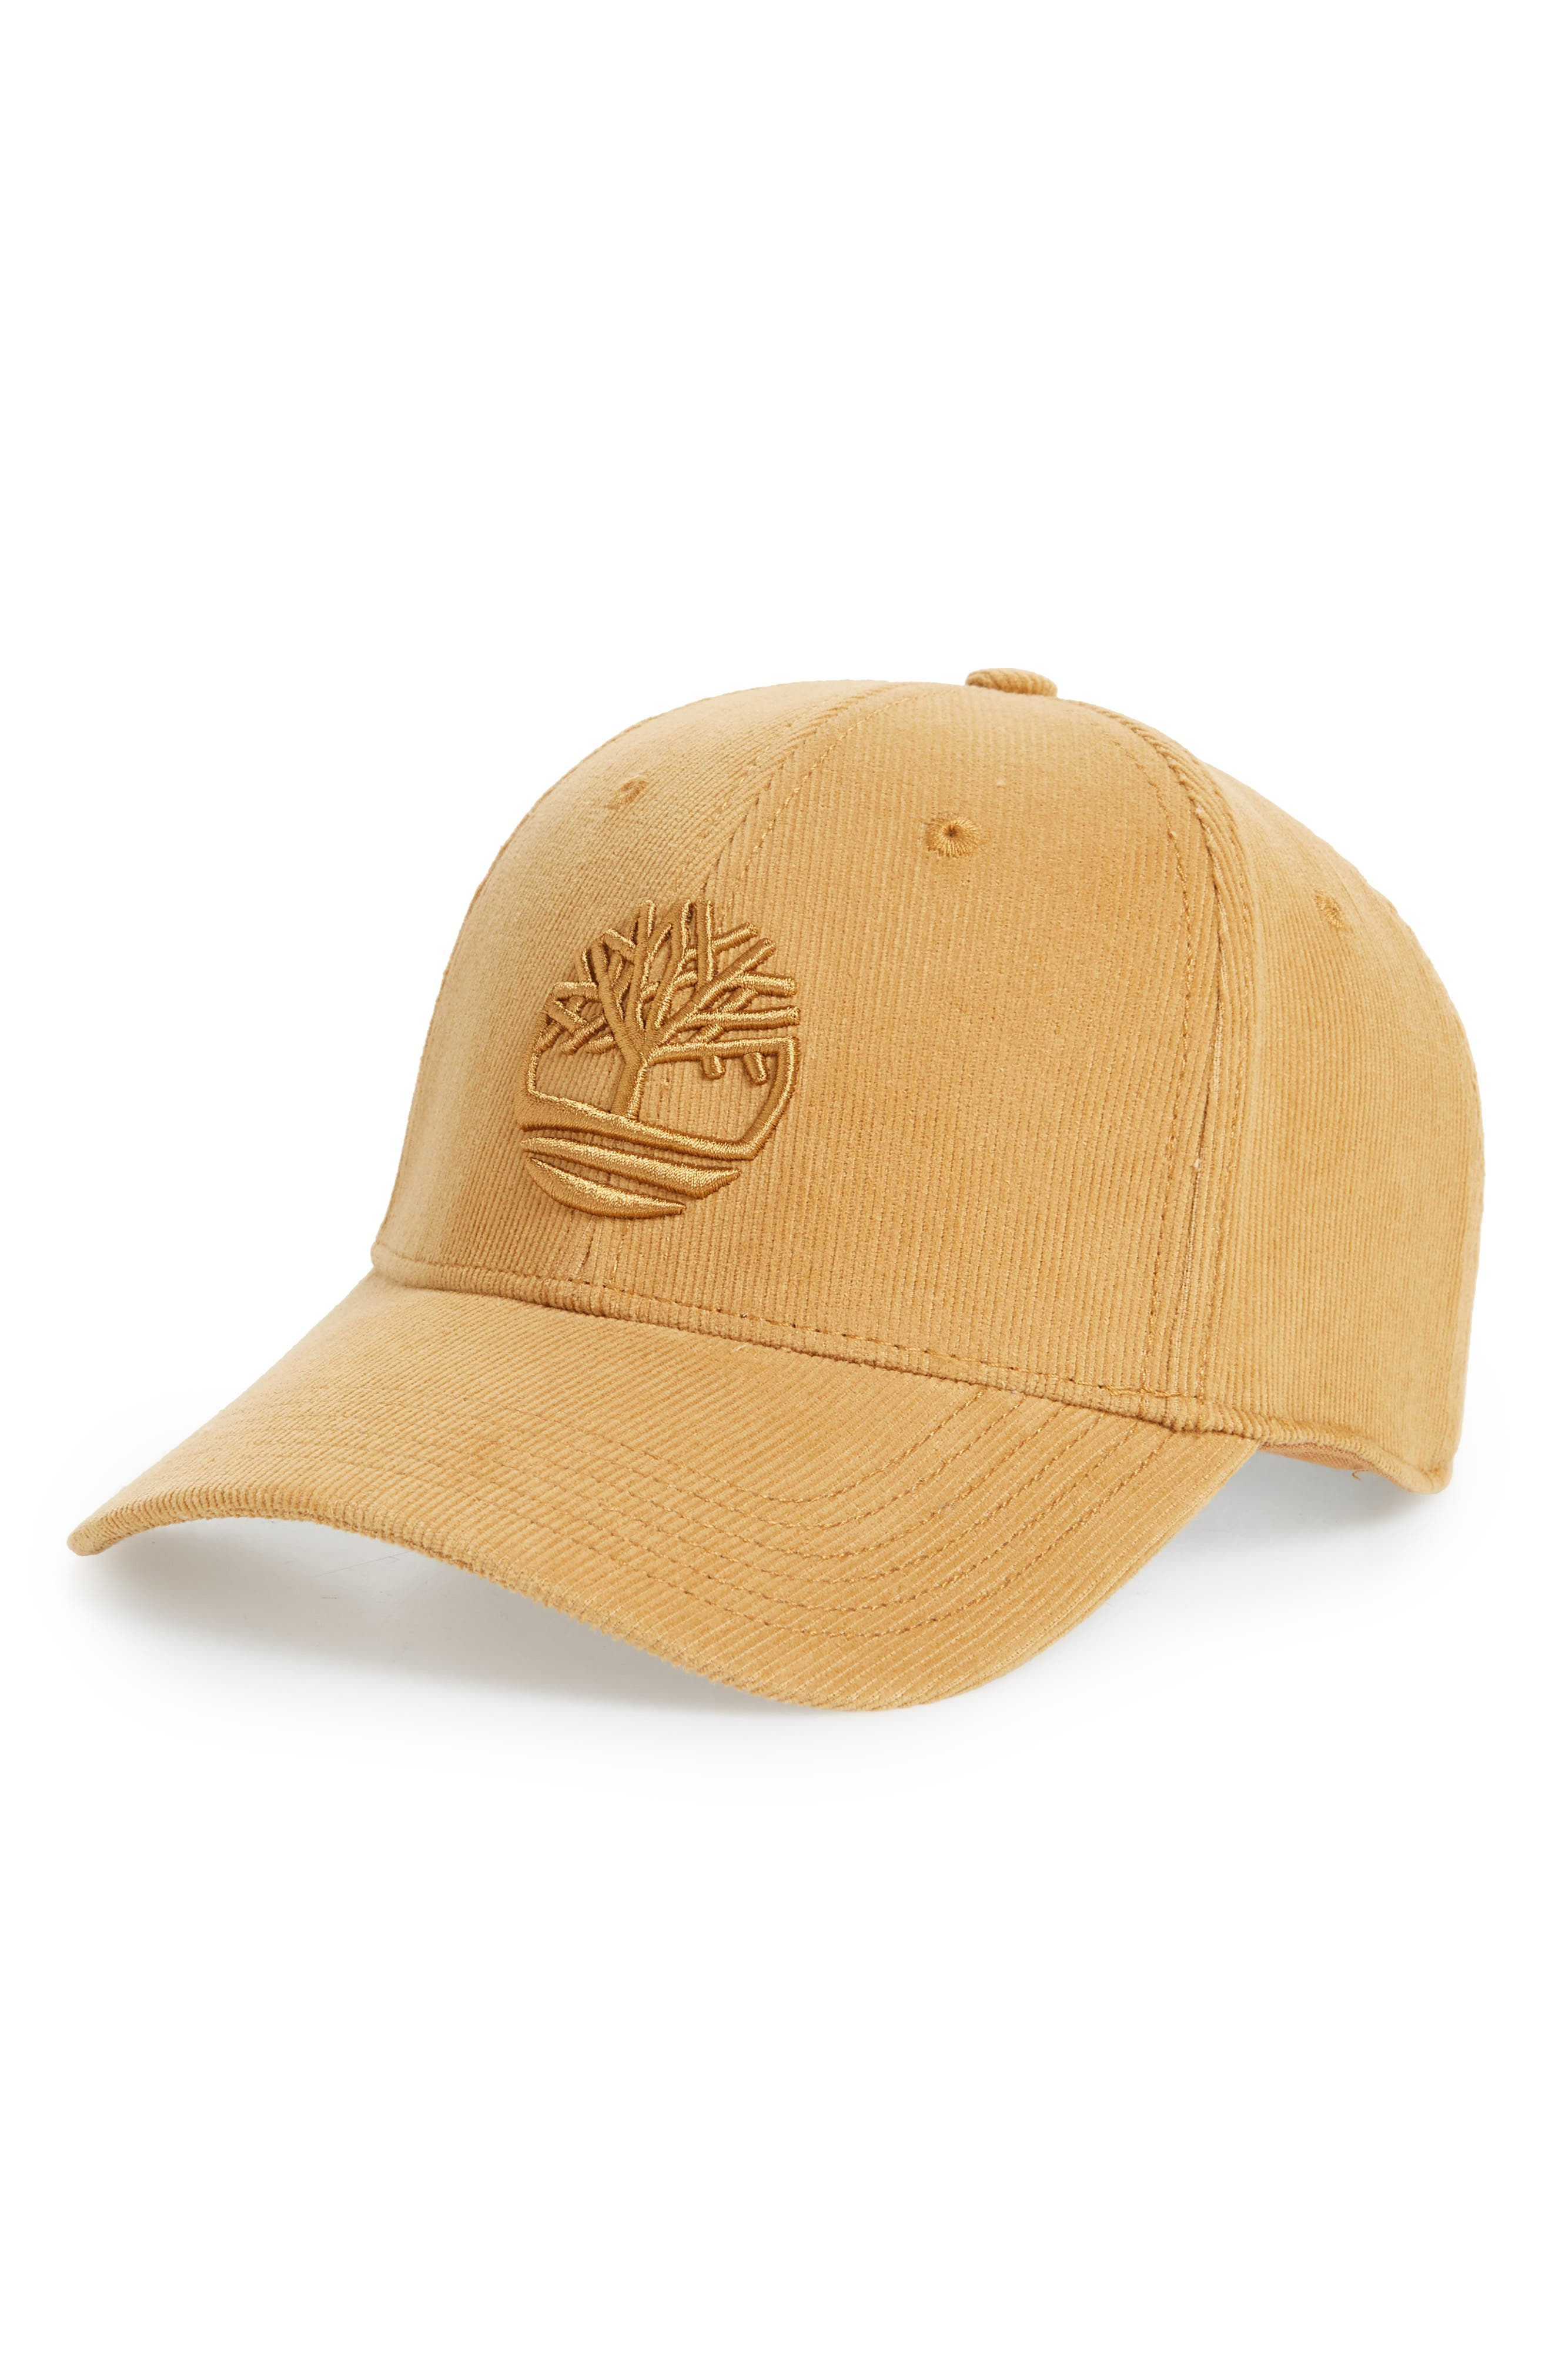 TIMBERLAND Logo Embroidered Corduroy Ball Cap, Main, color, WHEAT